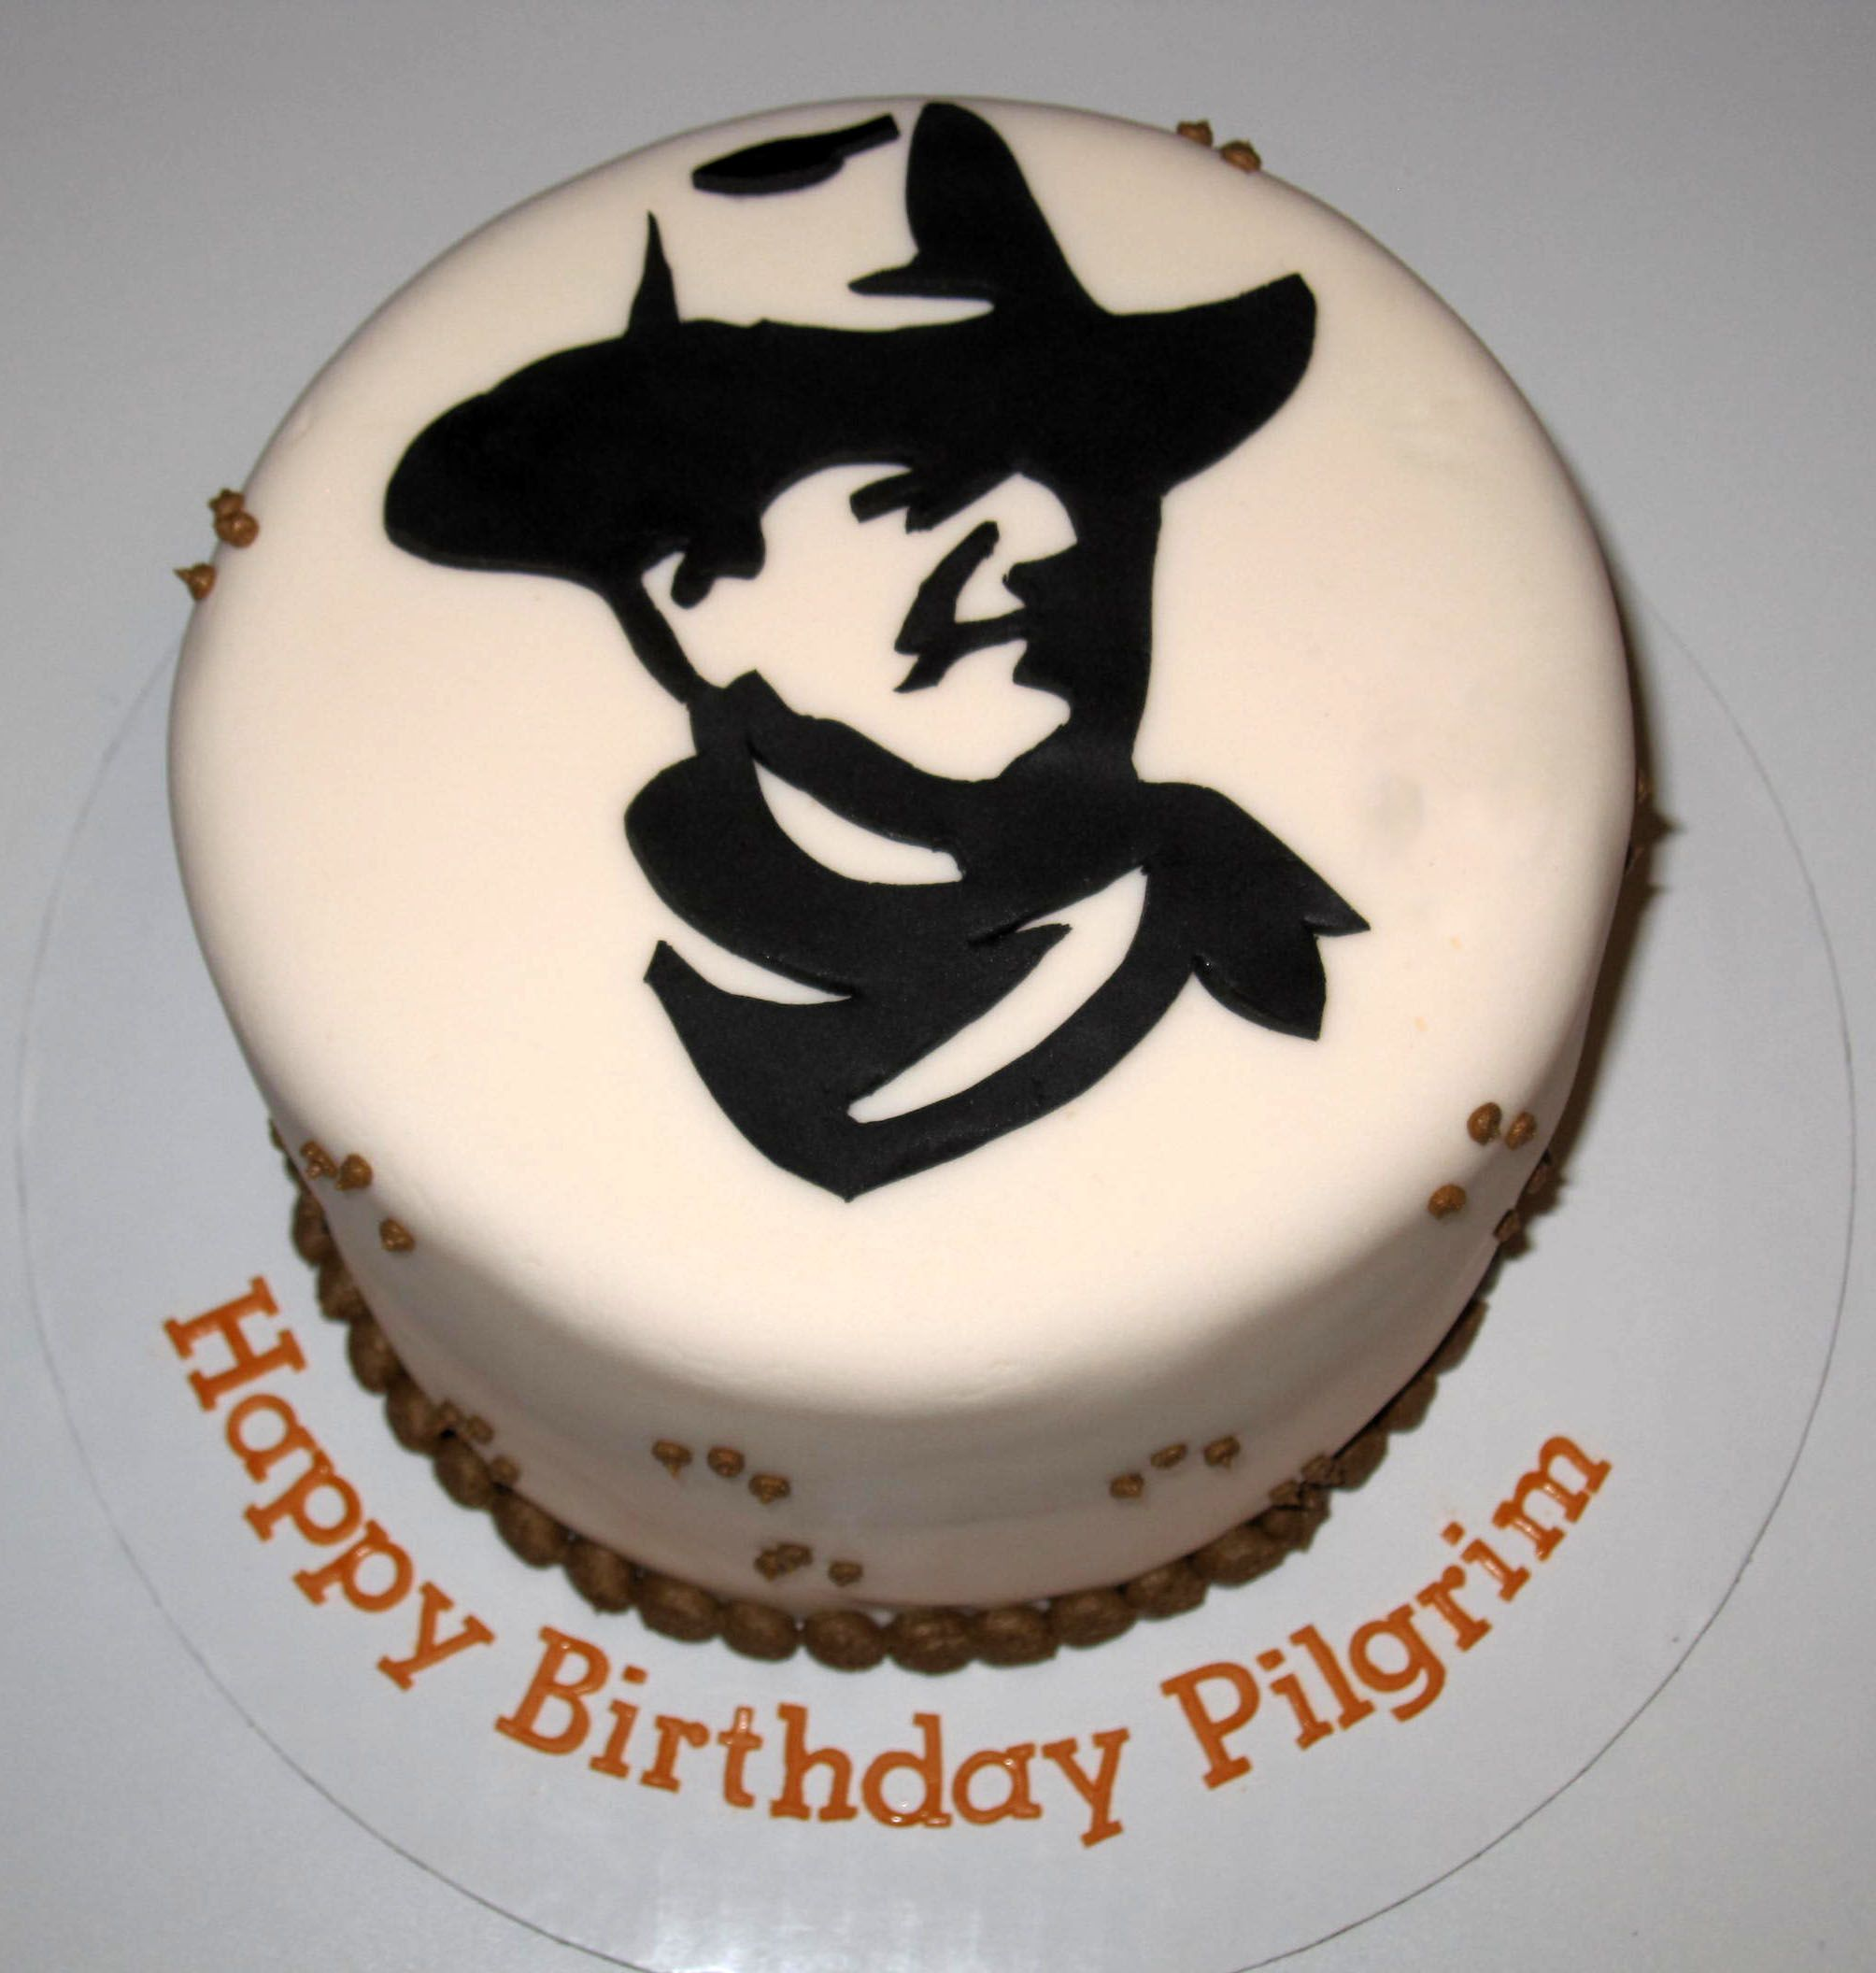 Birthday Cake For John : John Wayne Birthday Cake Party Cakes Pinterest John ...